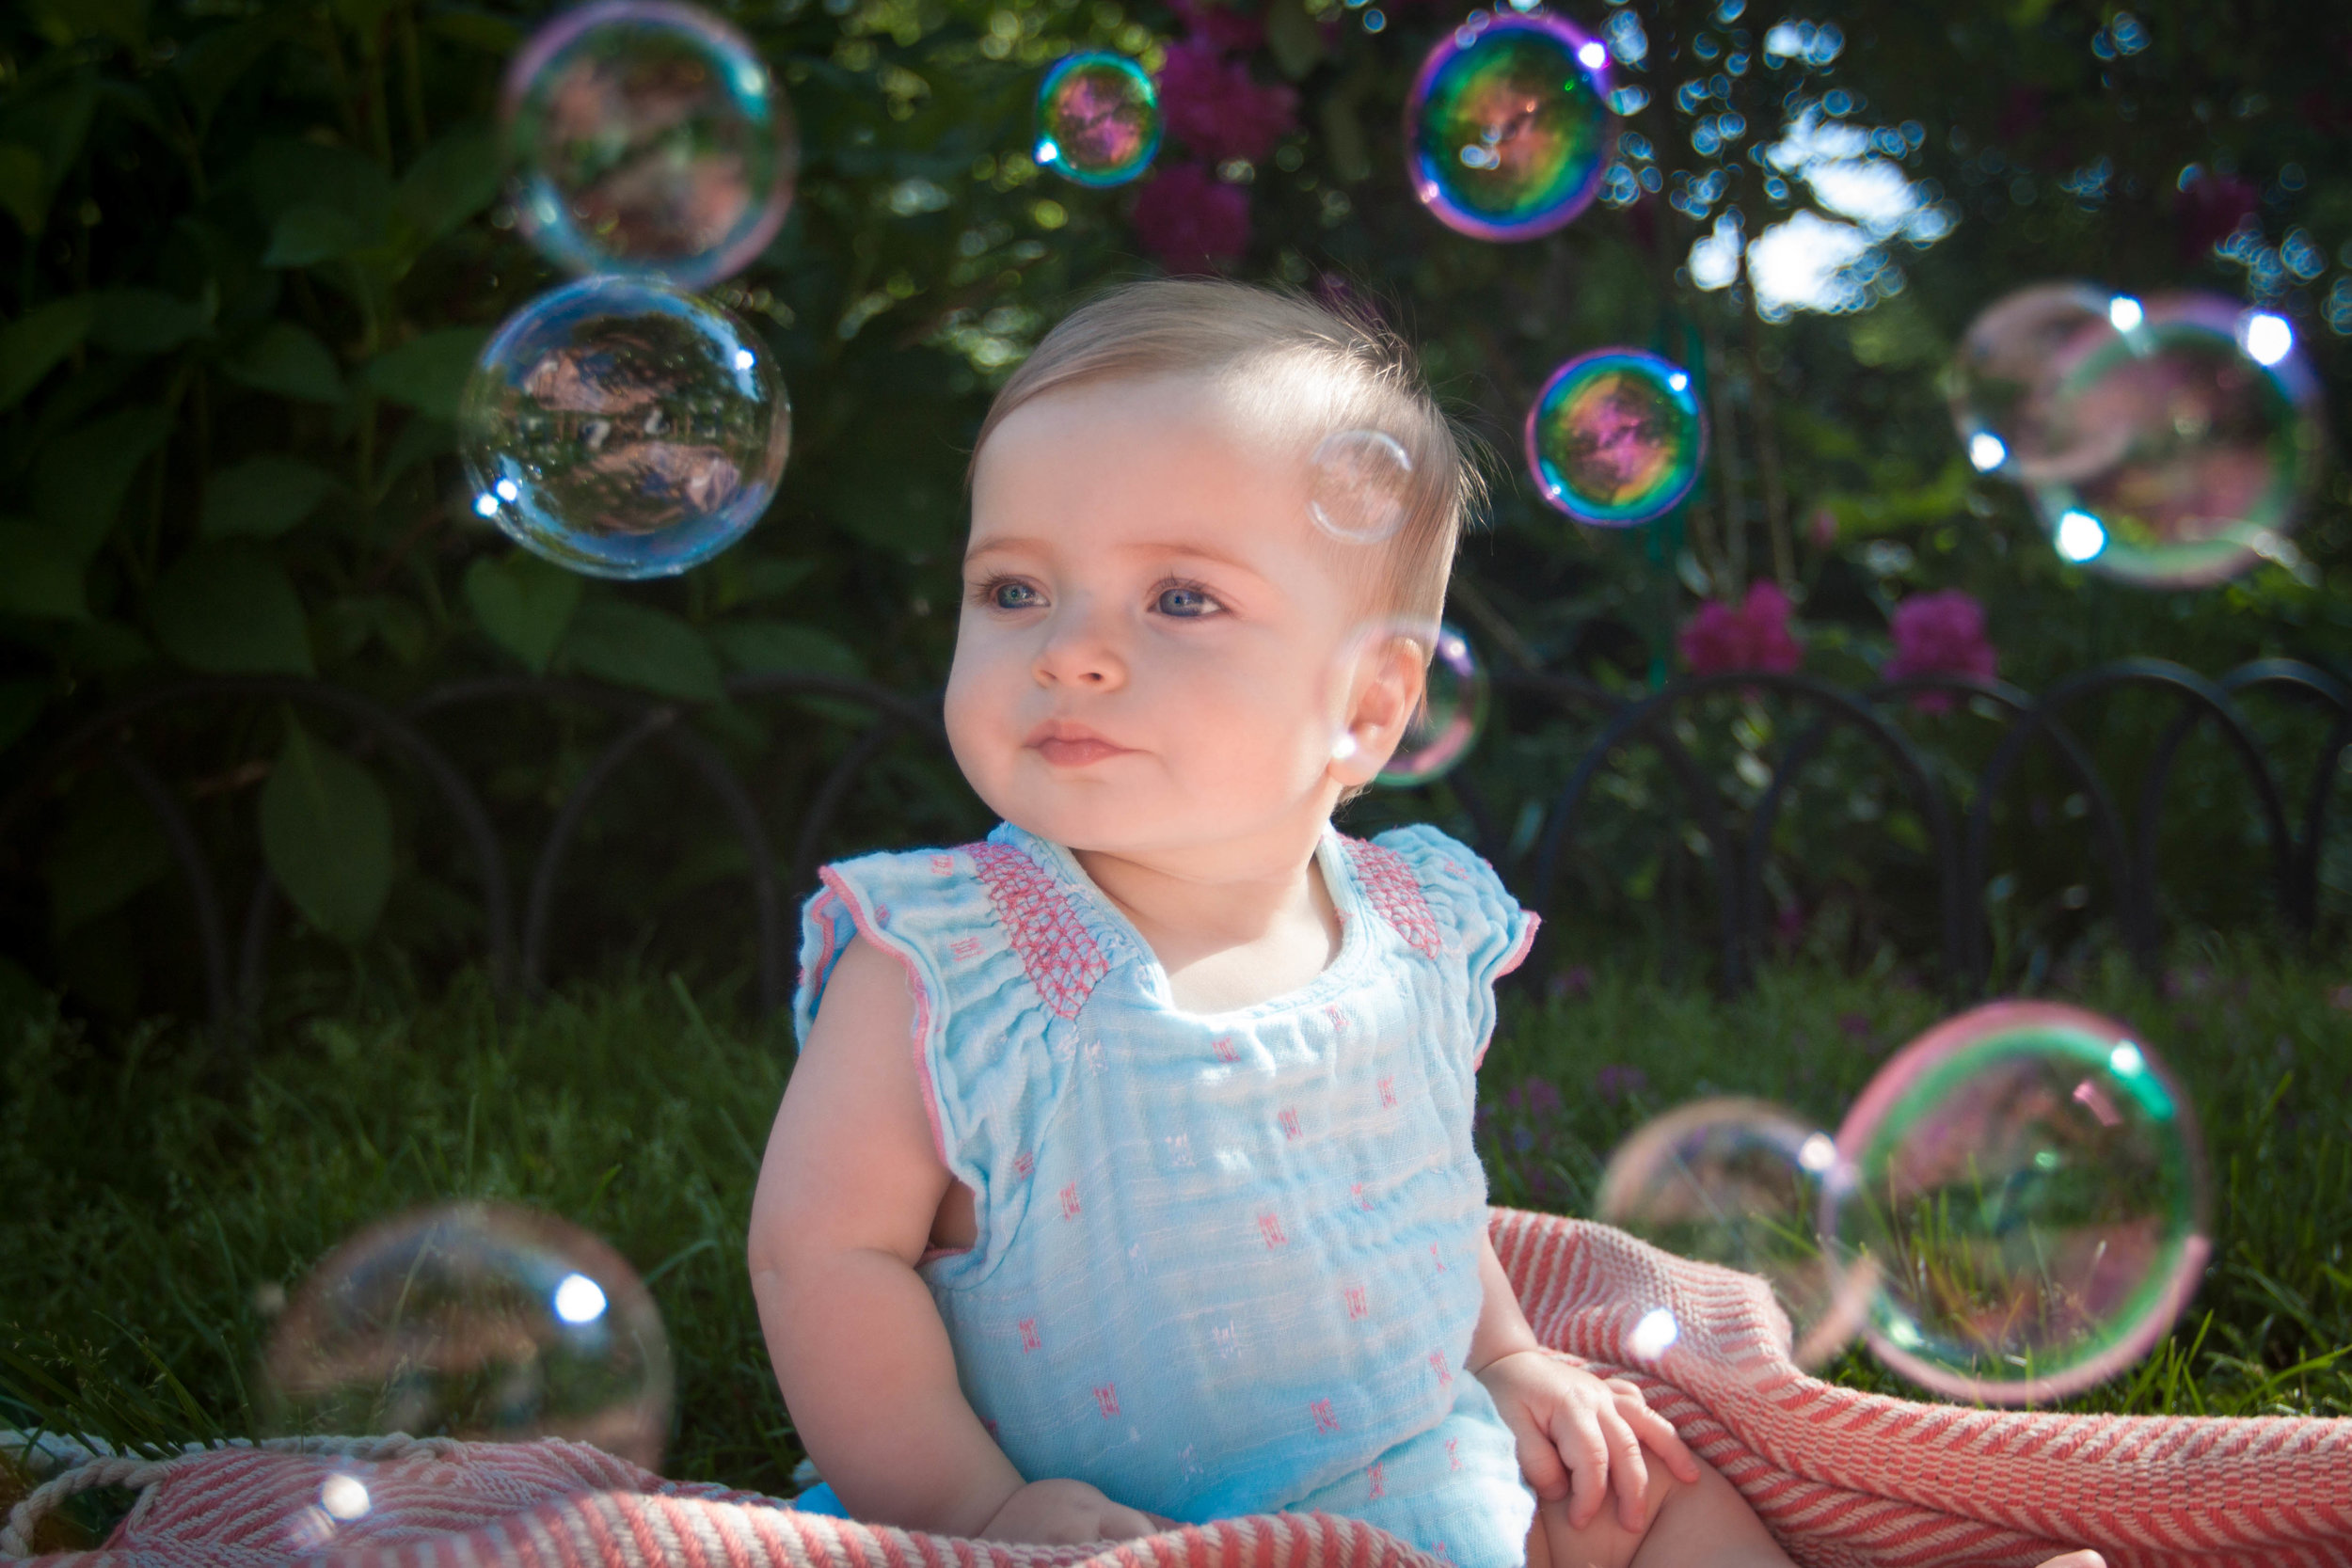 Dreamy Fun with bubbles!